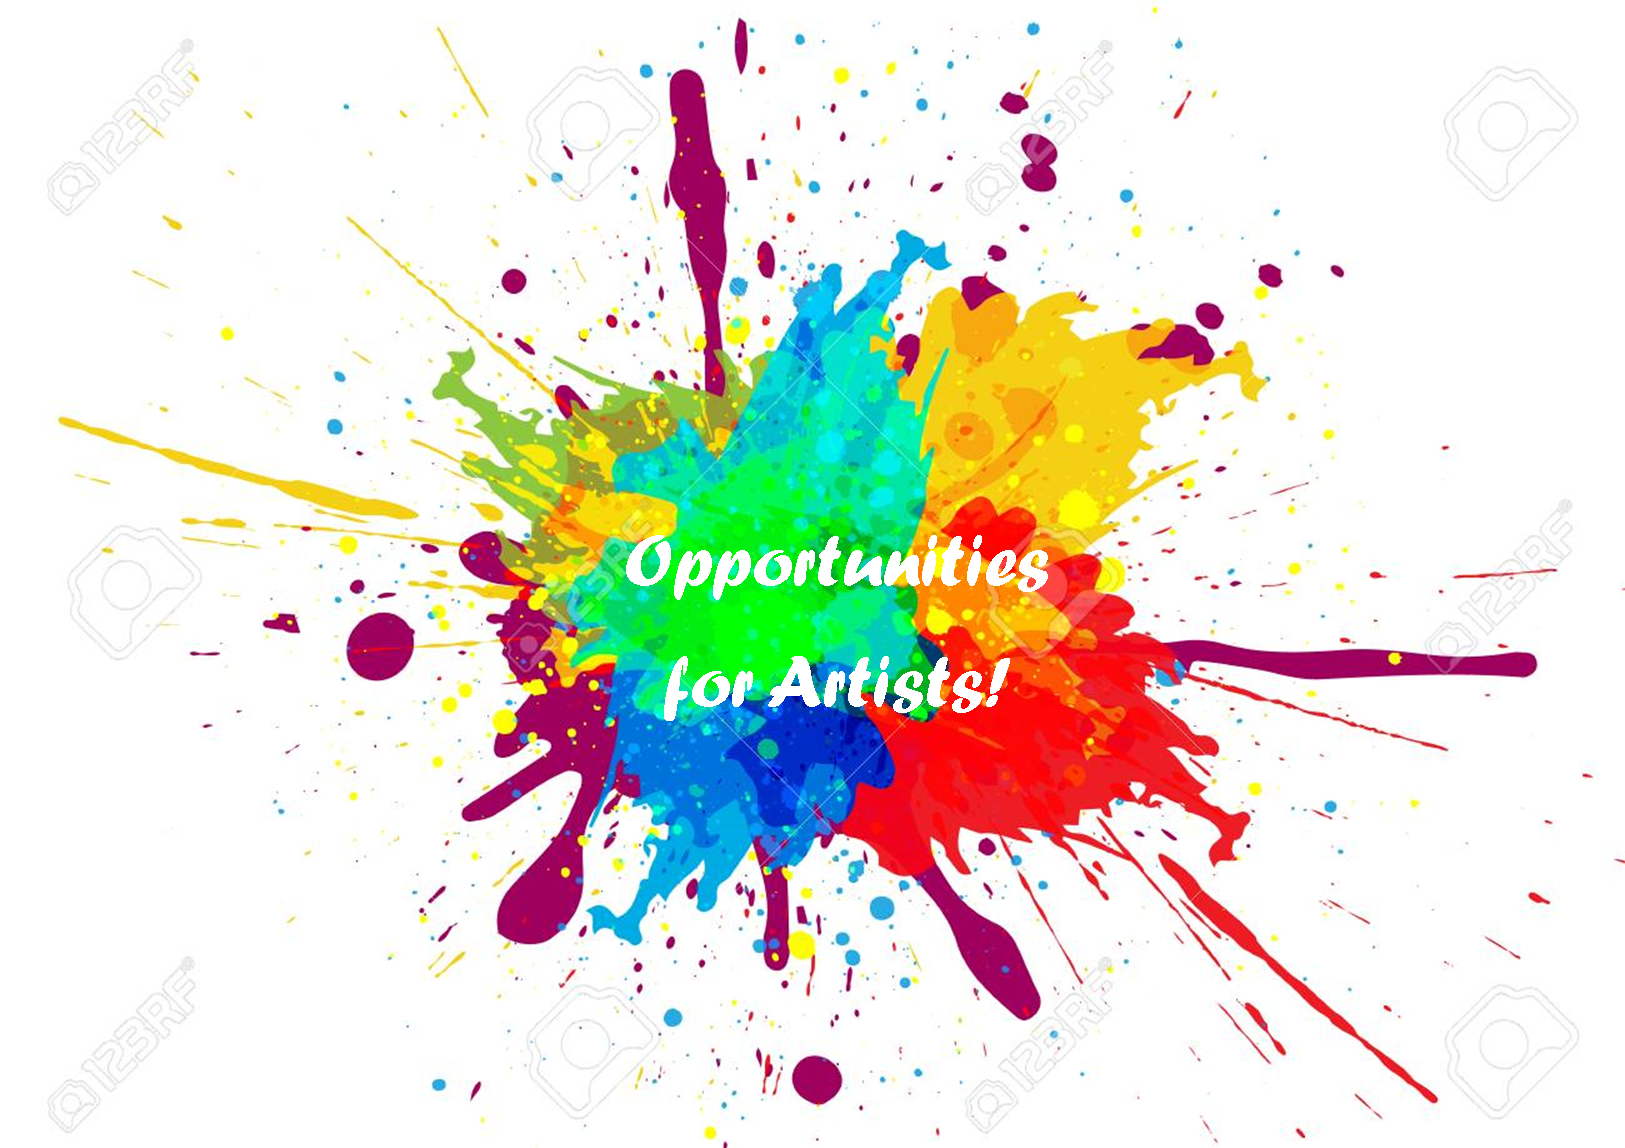 Opportunities for Artists